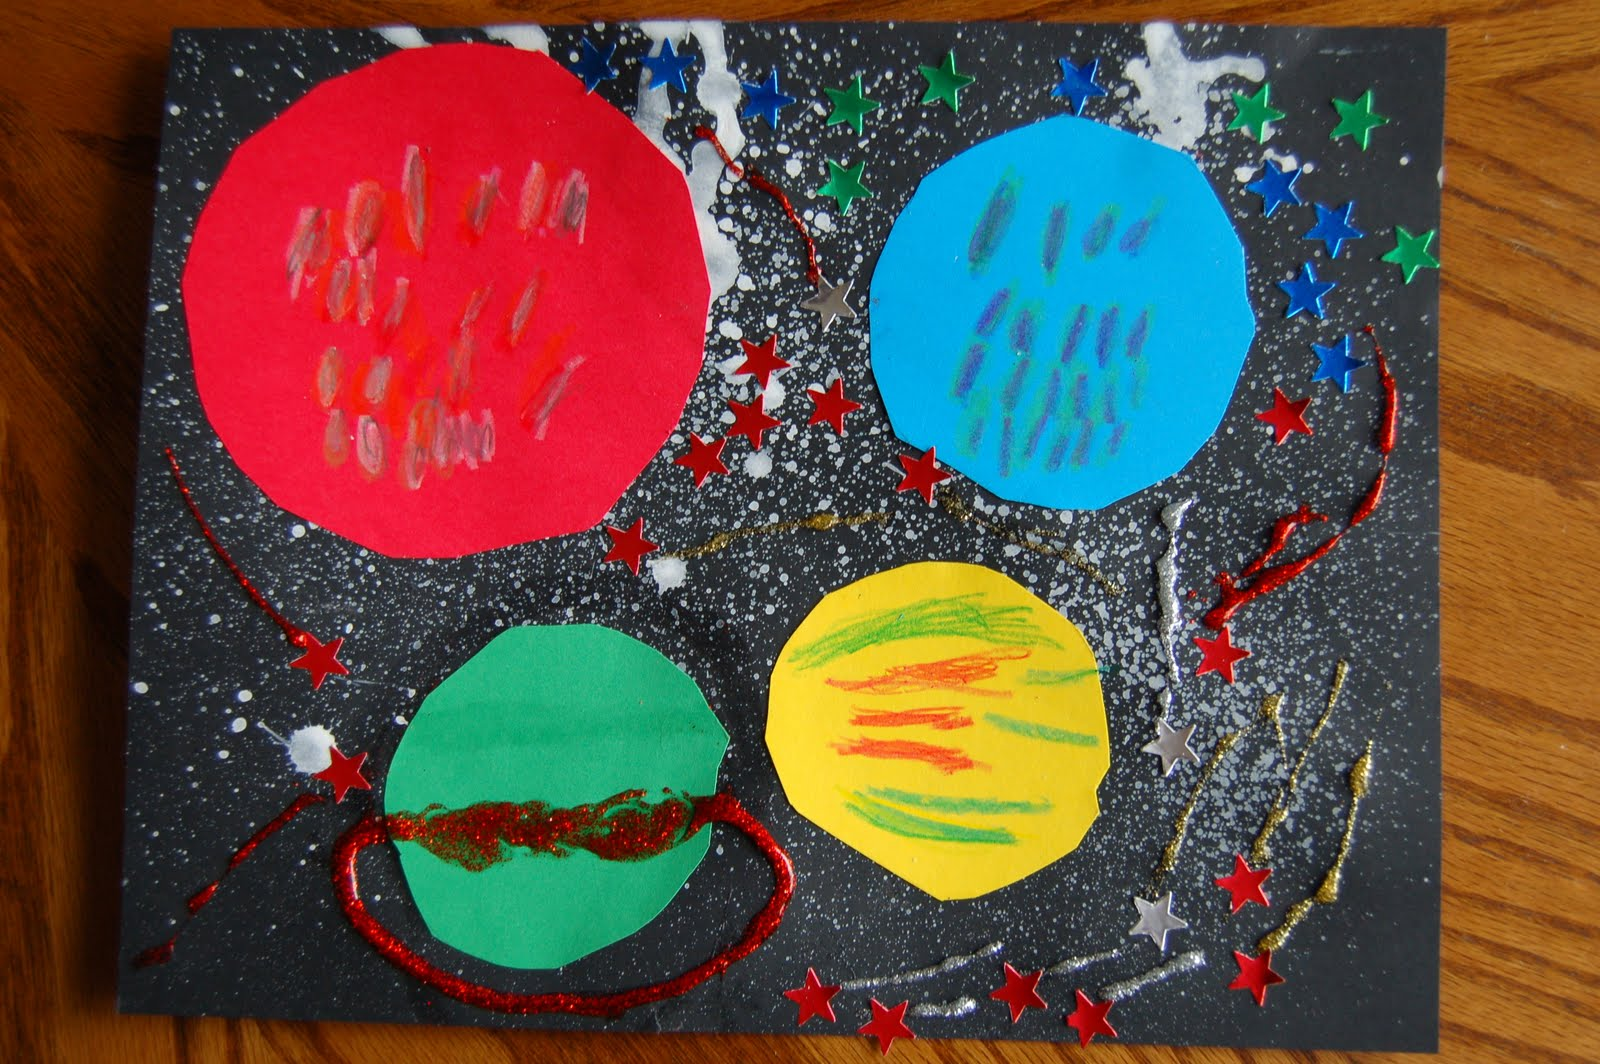 Crafts for one year olds - Arts And Crafts For Five Year Olds I Am A Huge Fan Of Art That